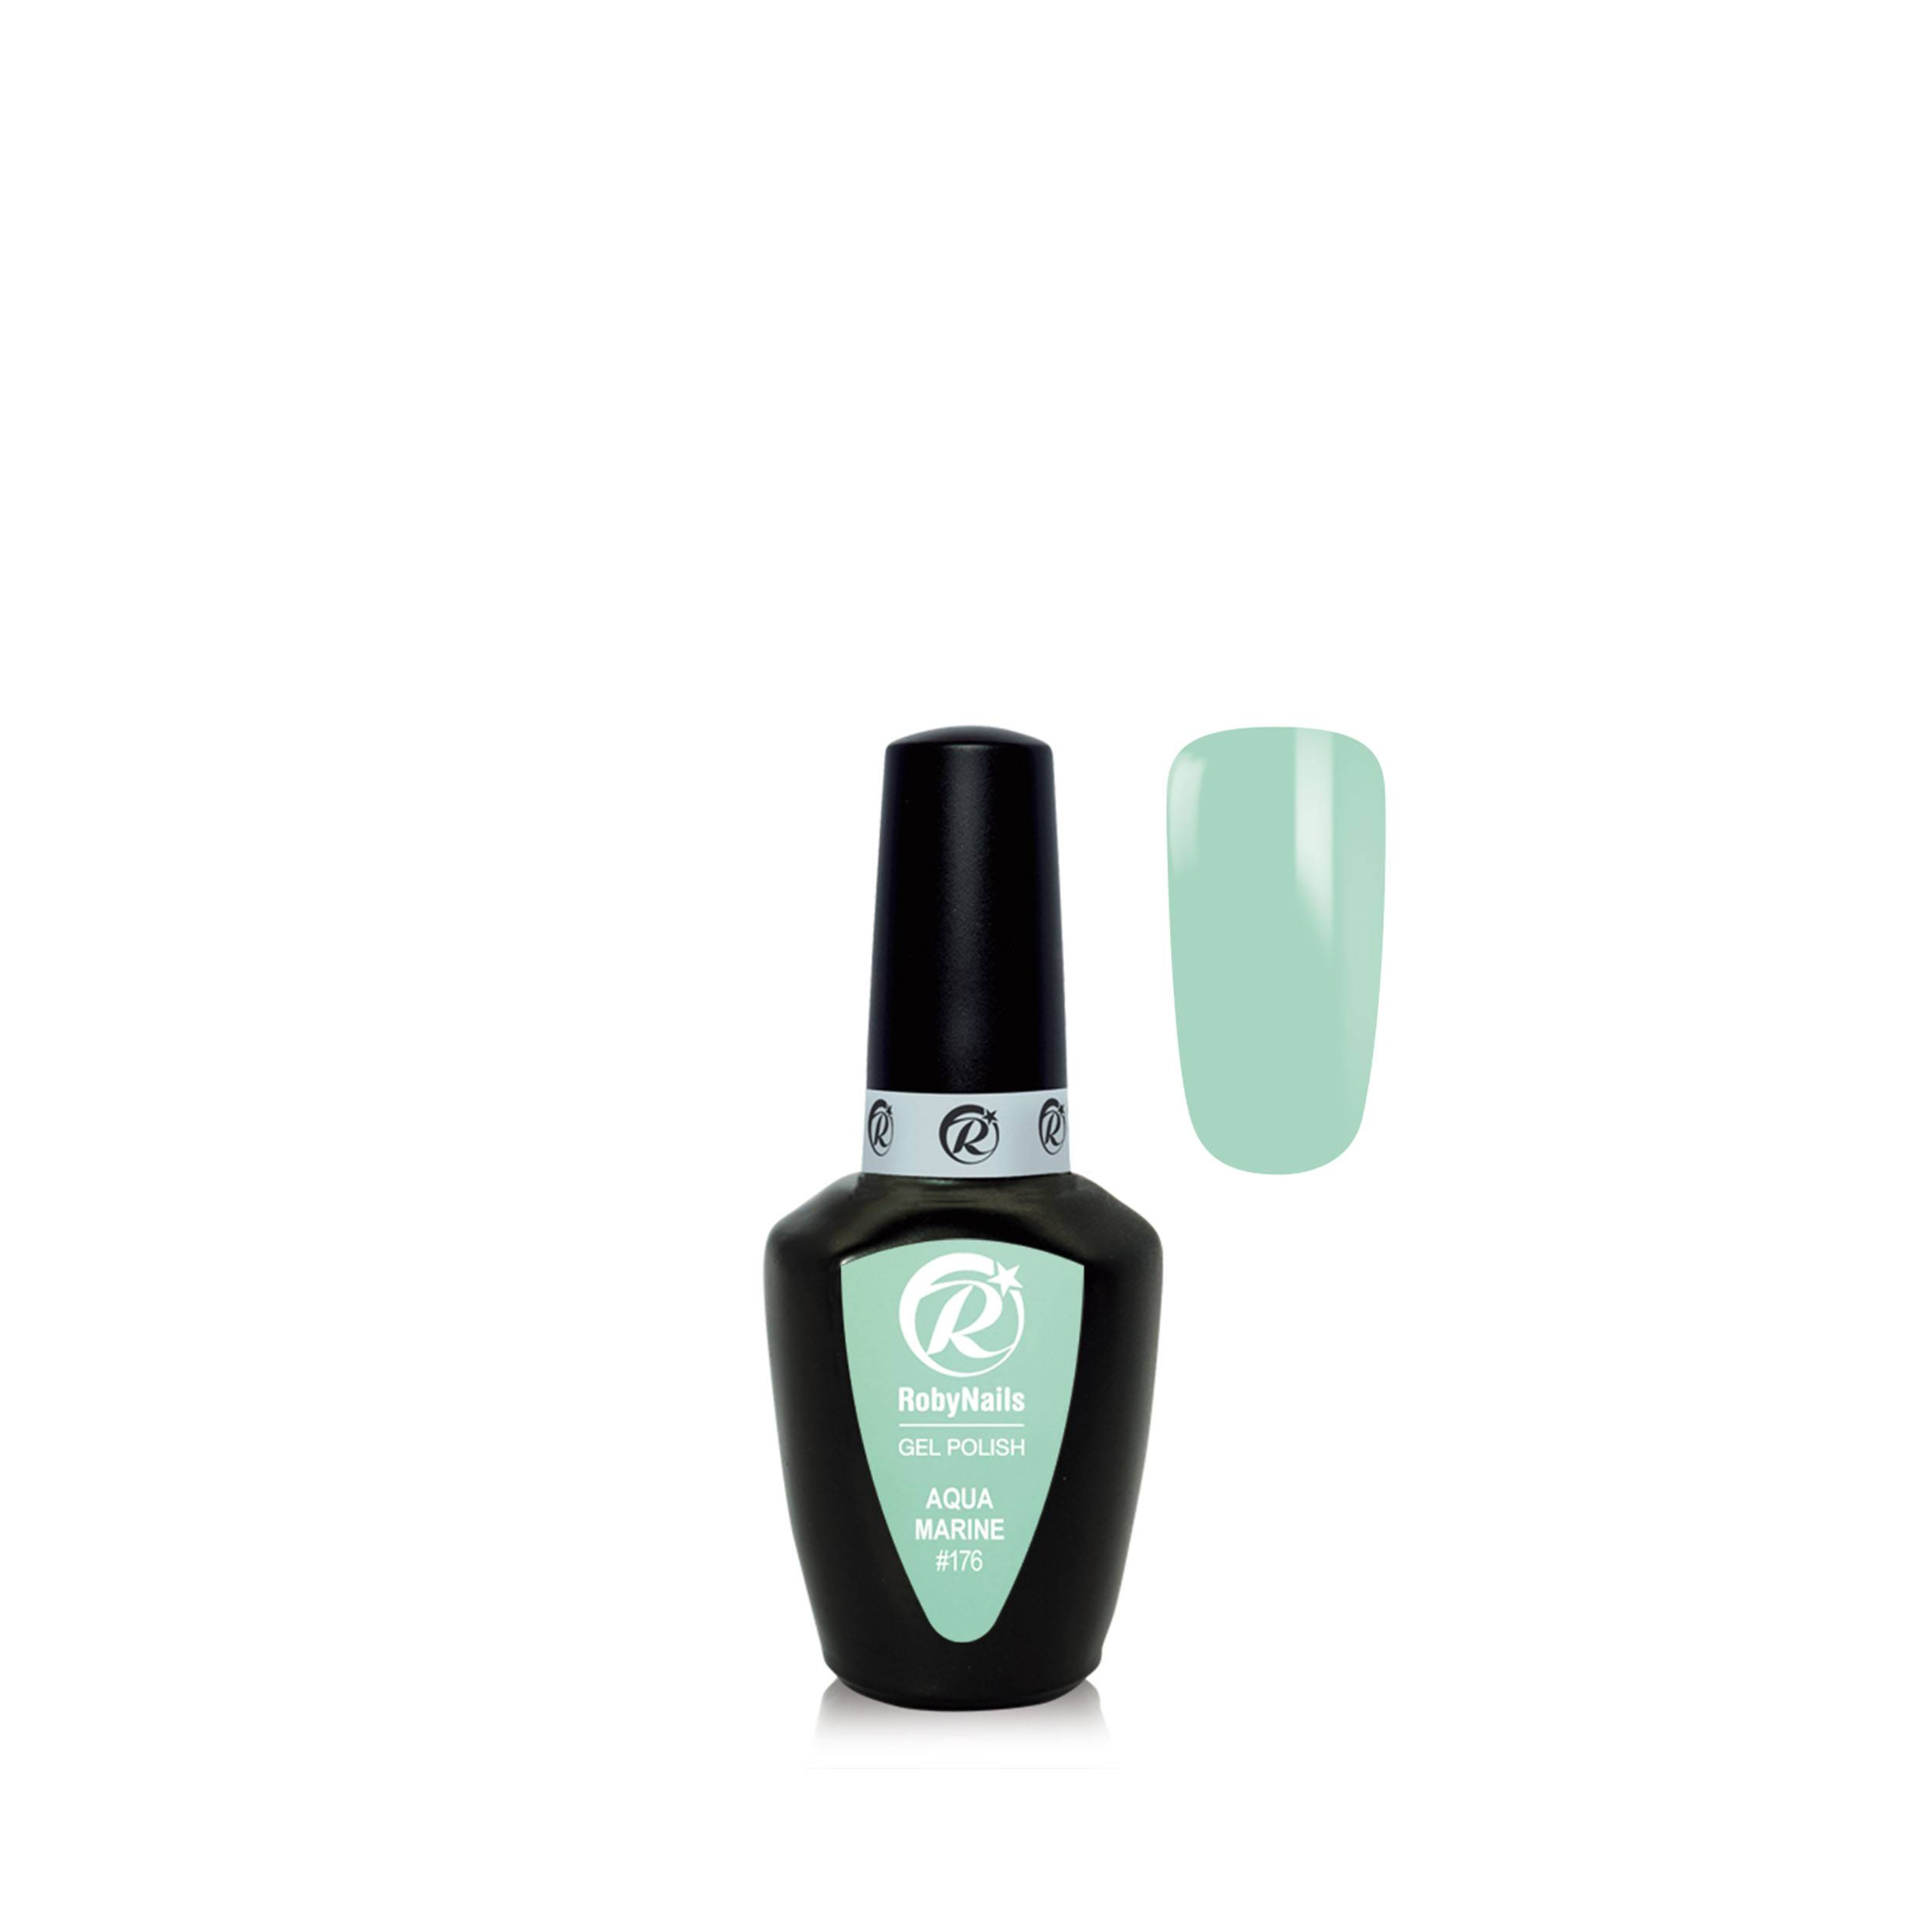 Gel Polish Acqua Marine 21176 8 Ml